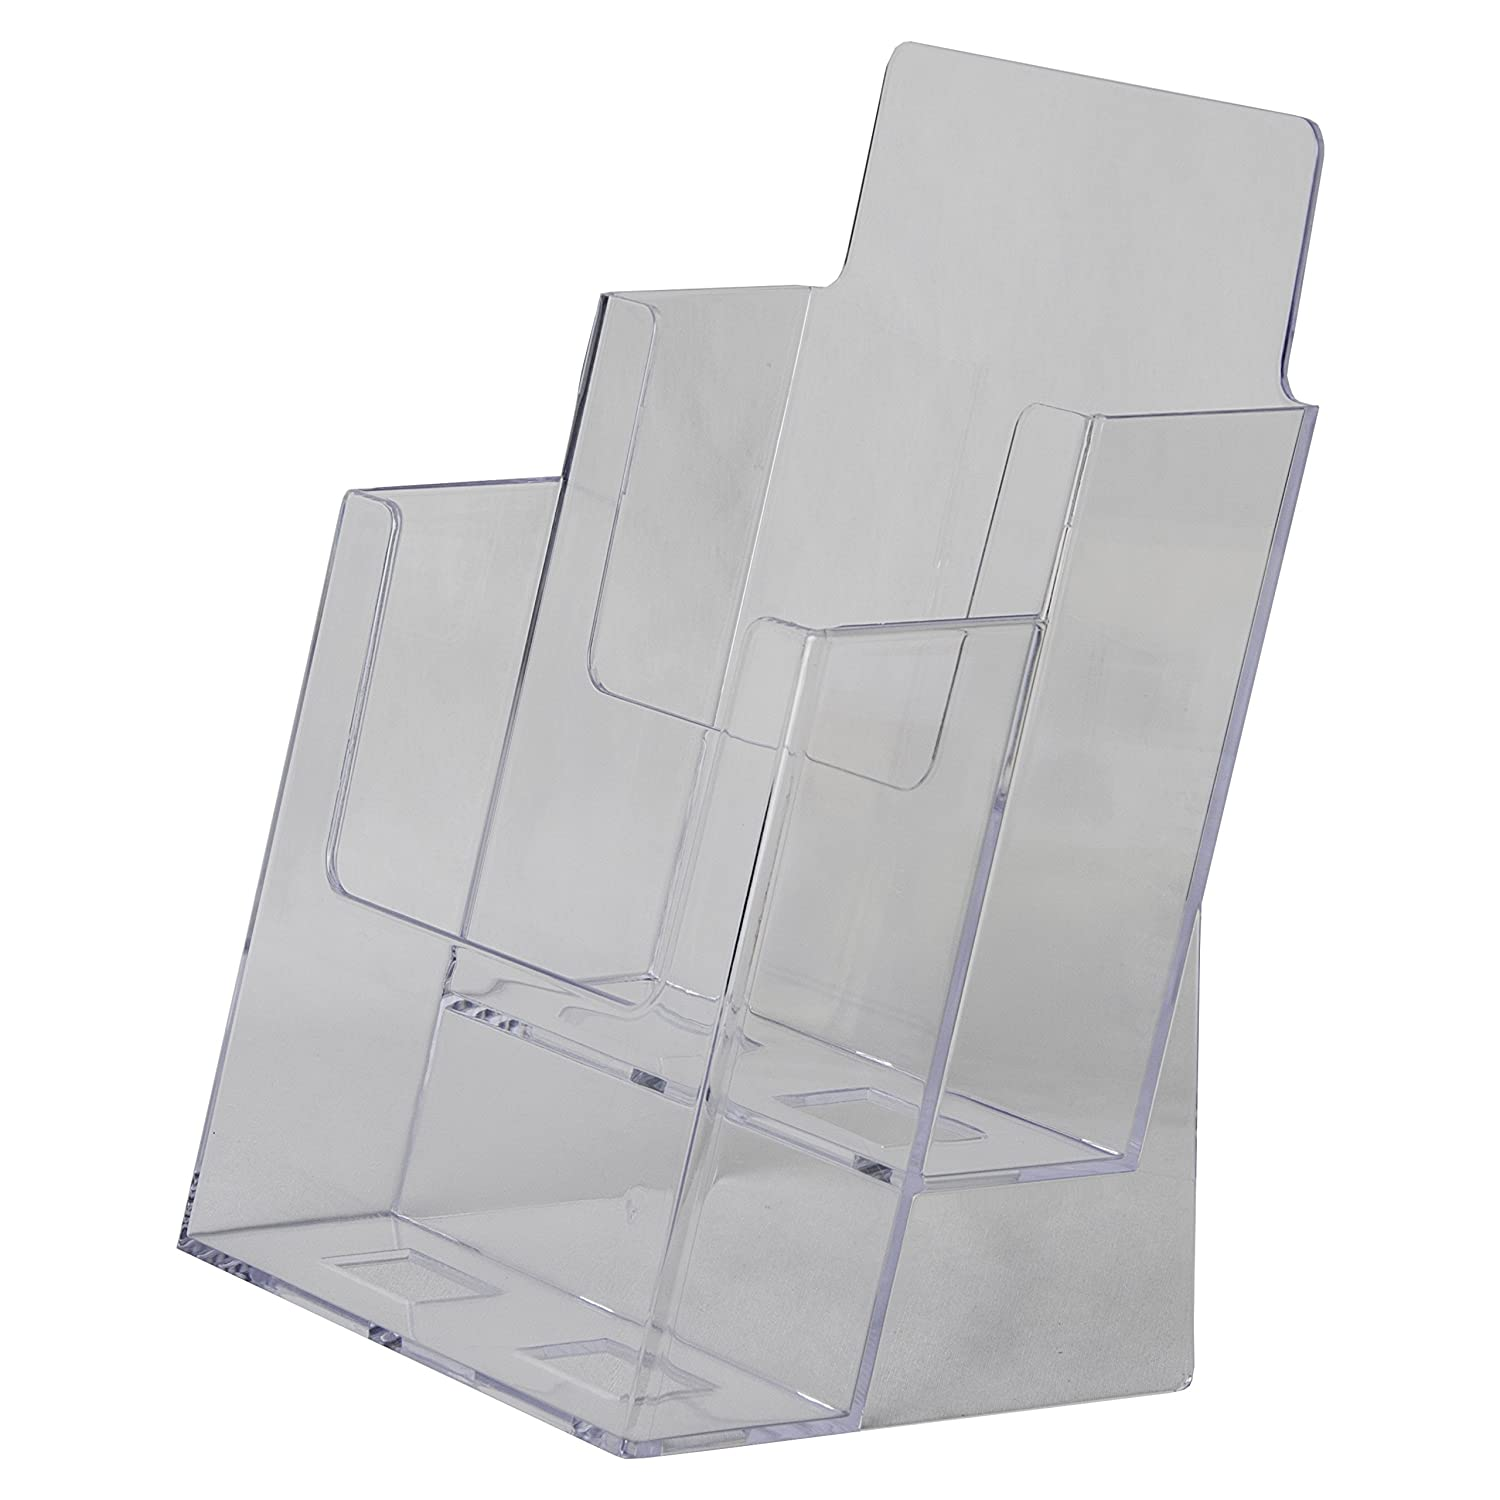 Amazon Clear Ad LHF S112 Acrylic Slant Back 2 Tier 2 Pocket Bifold Brochure Holder 6x9 Perfect to Display Booklets Catalogues Pamphlets